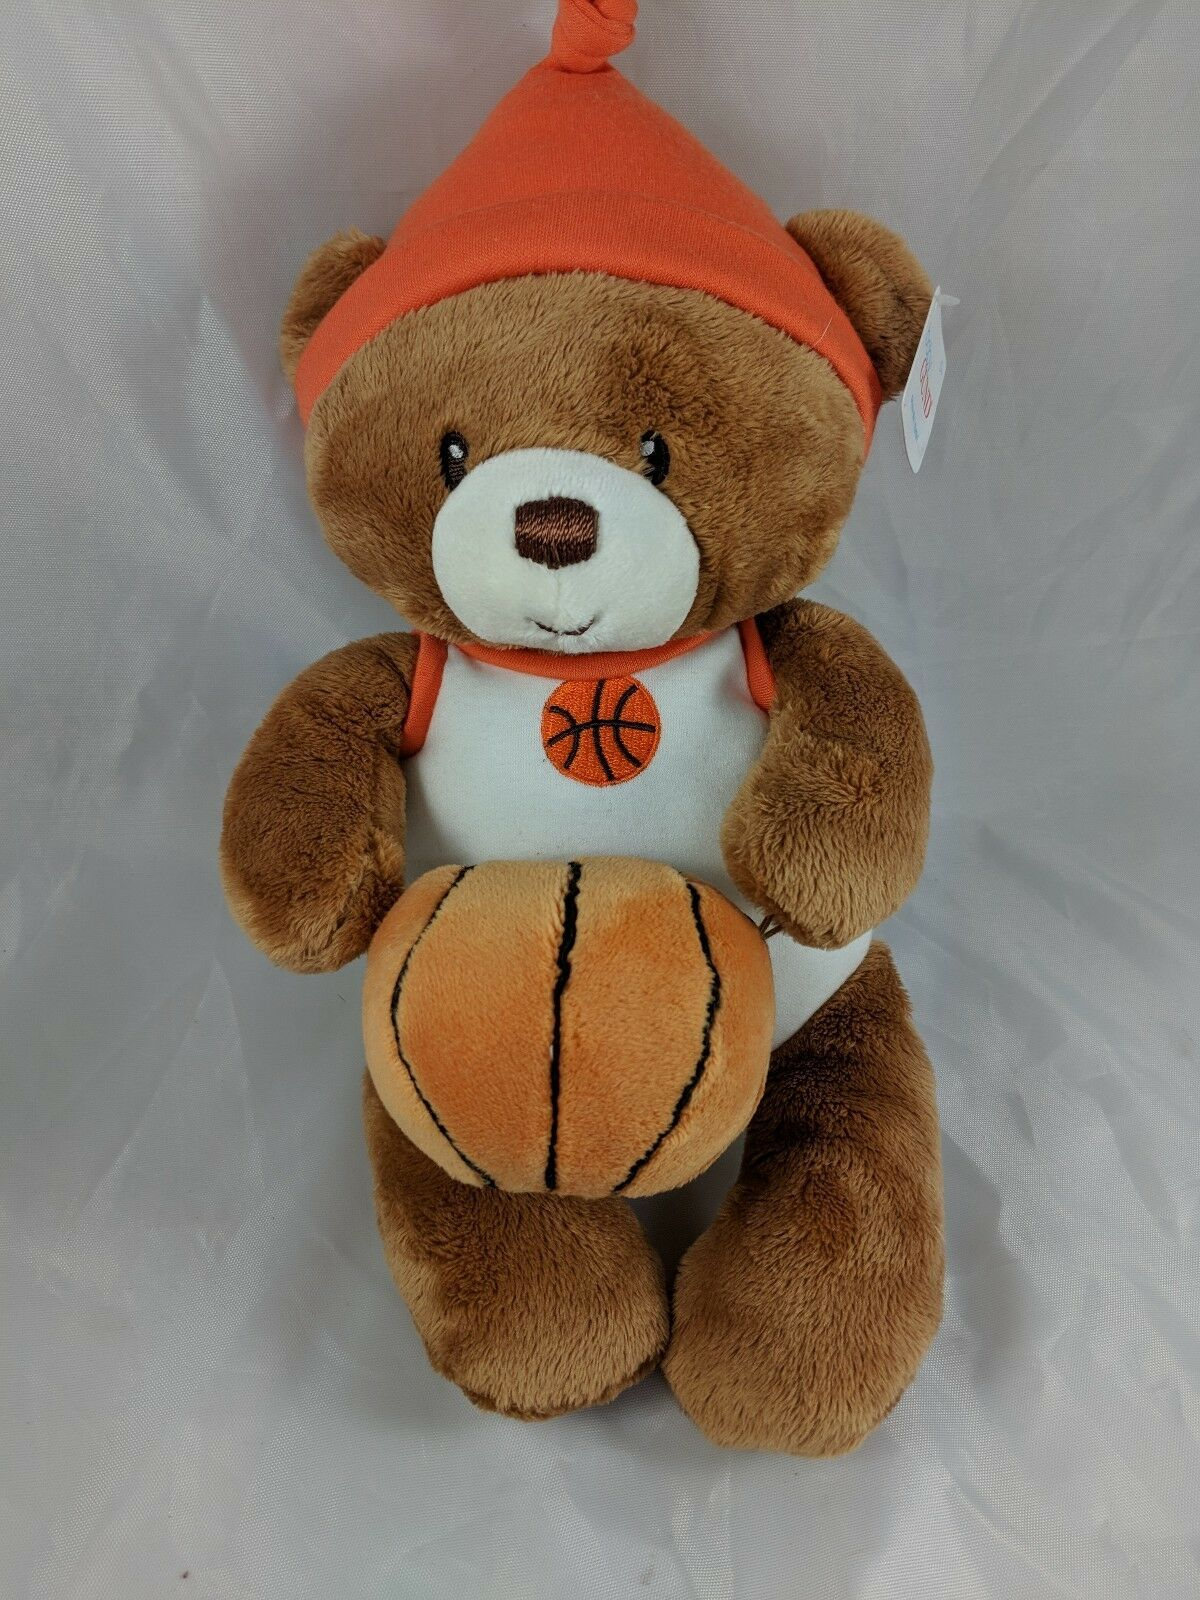 Primary image for Baby Gund Little Hoopster Basketball Bear Rattle Plush 4050504 Stuffed Animal